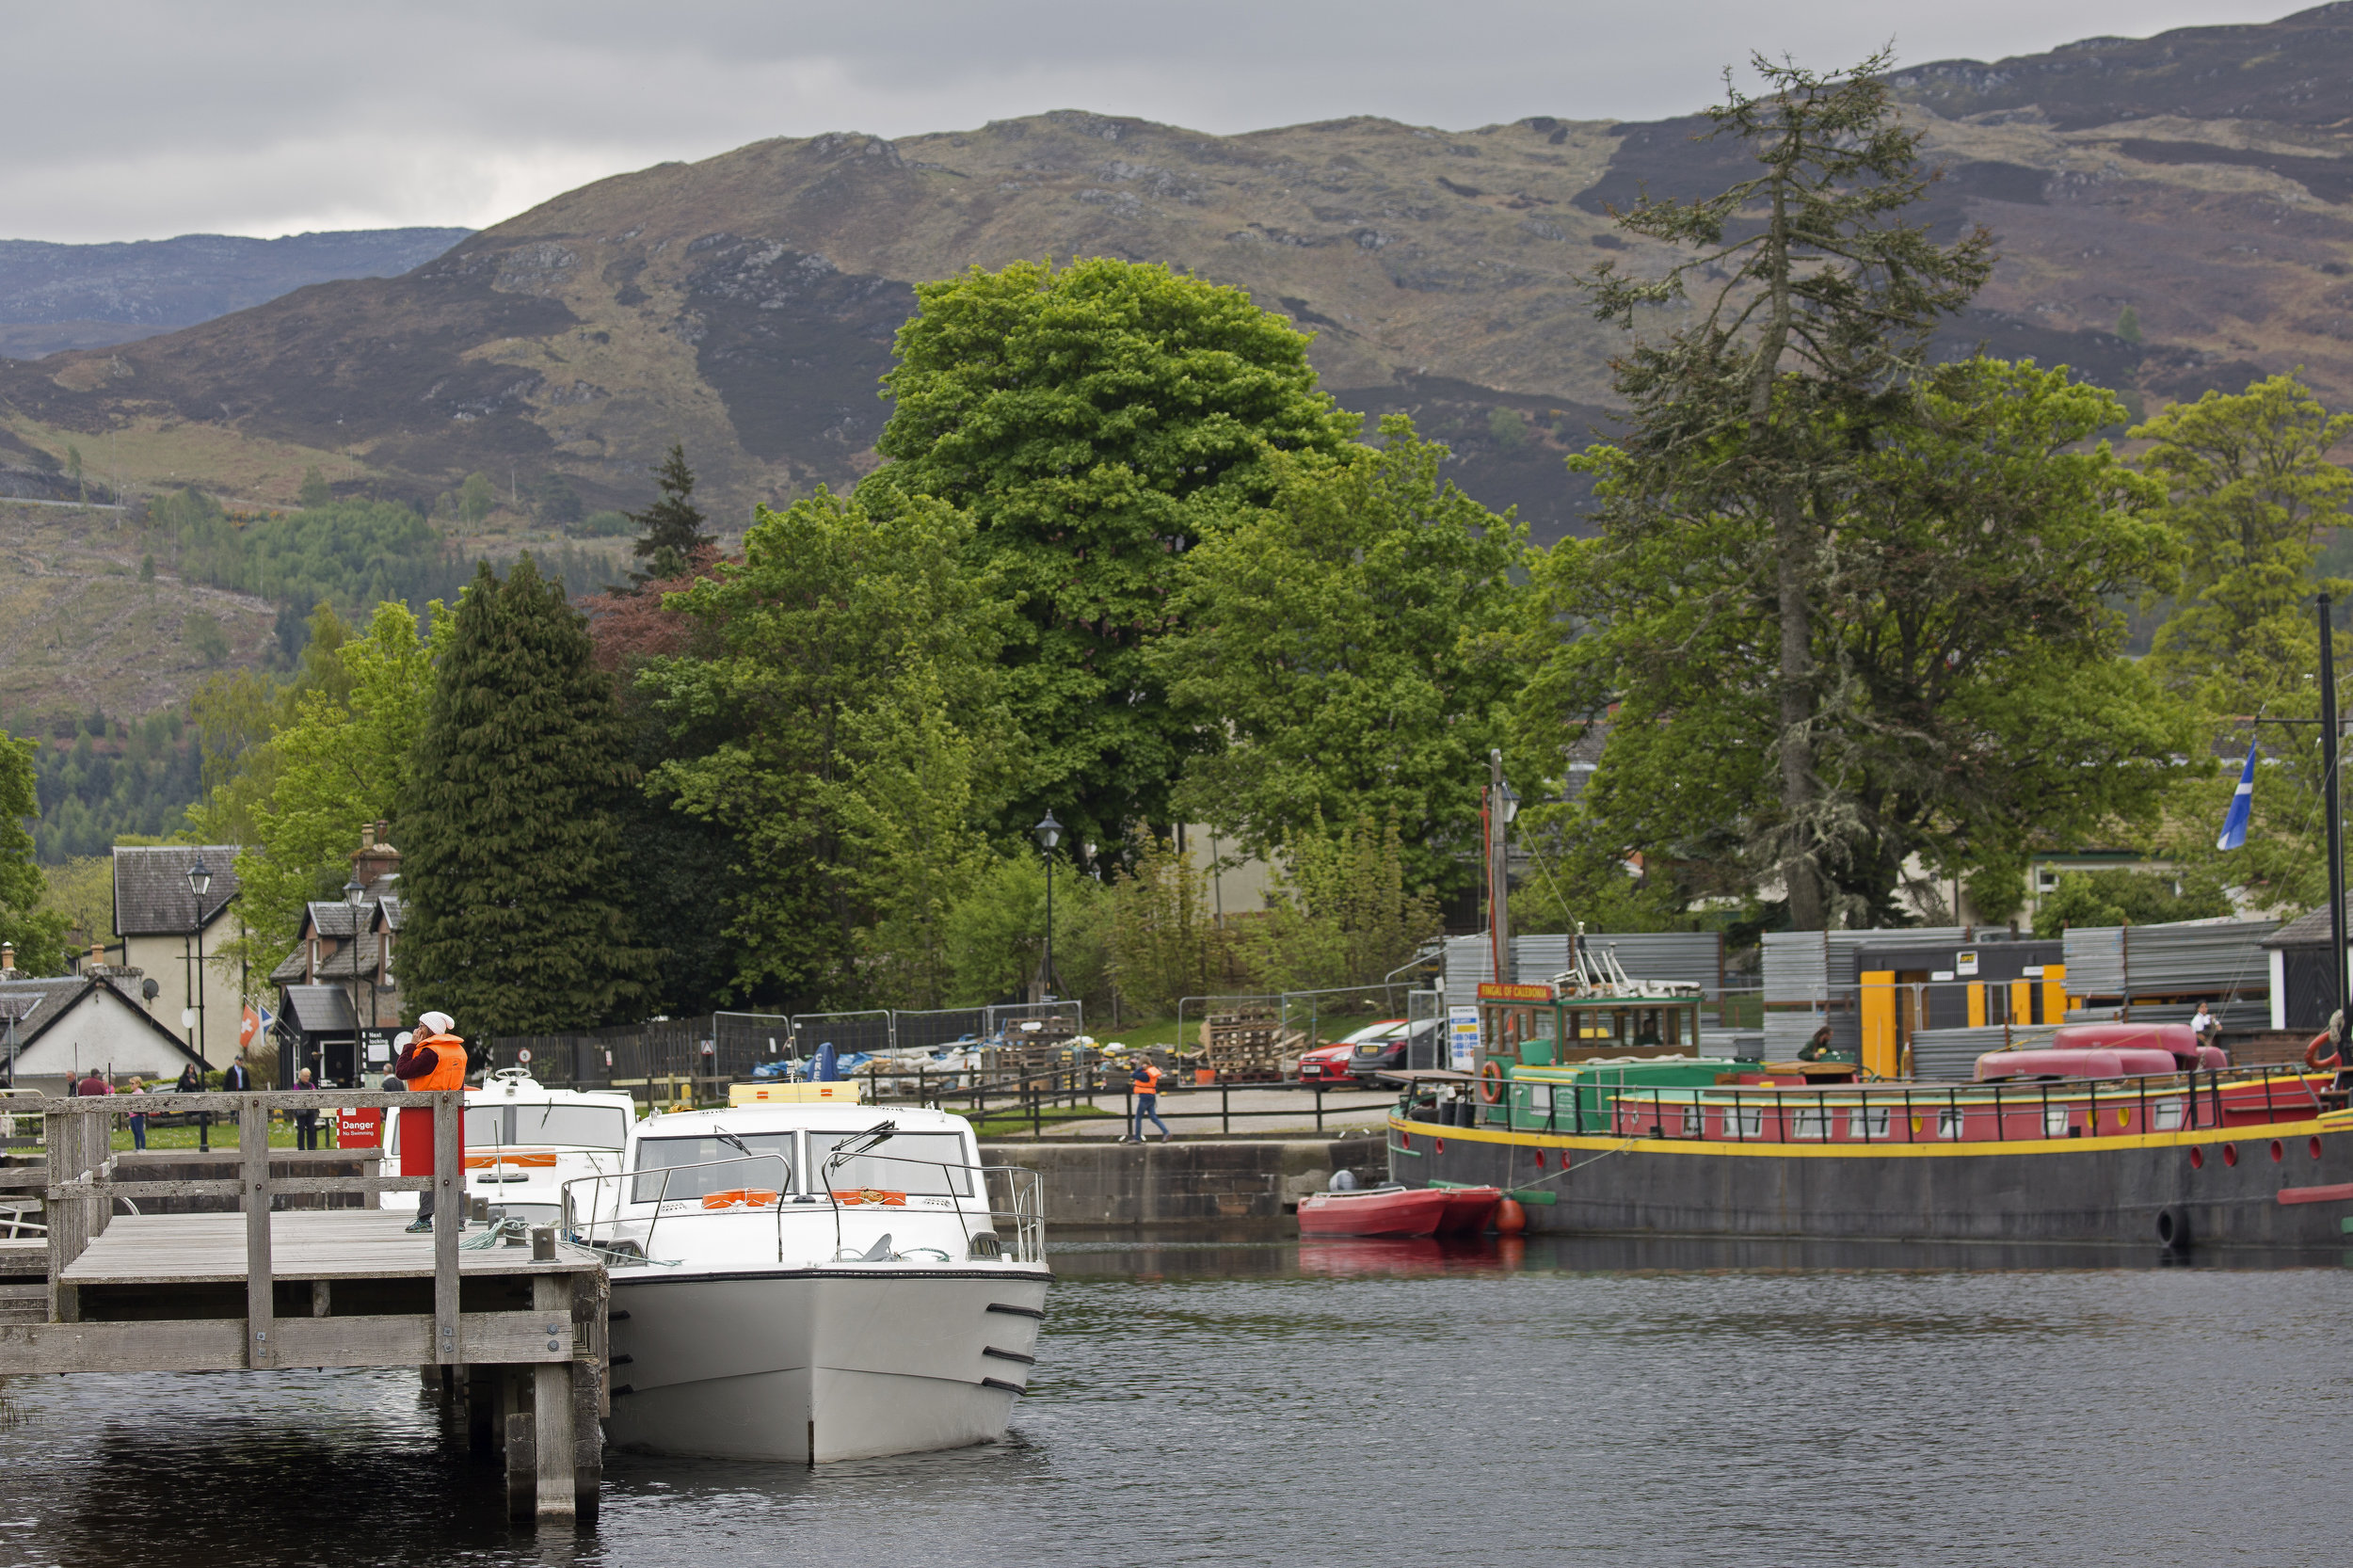 We're back in Fort Augustus for the night, and our timing is perfect.  We get to make our way down the locks in the last group of the night.